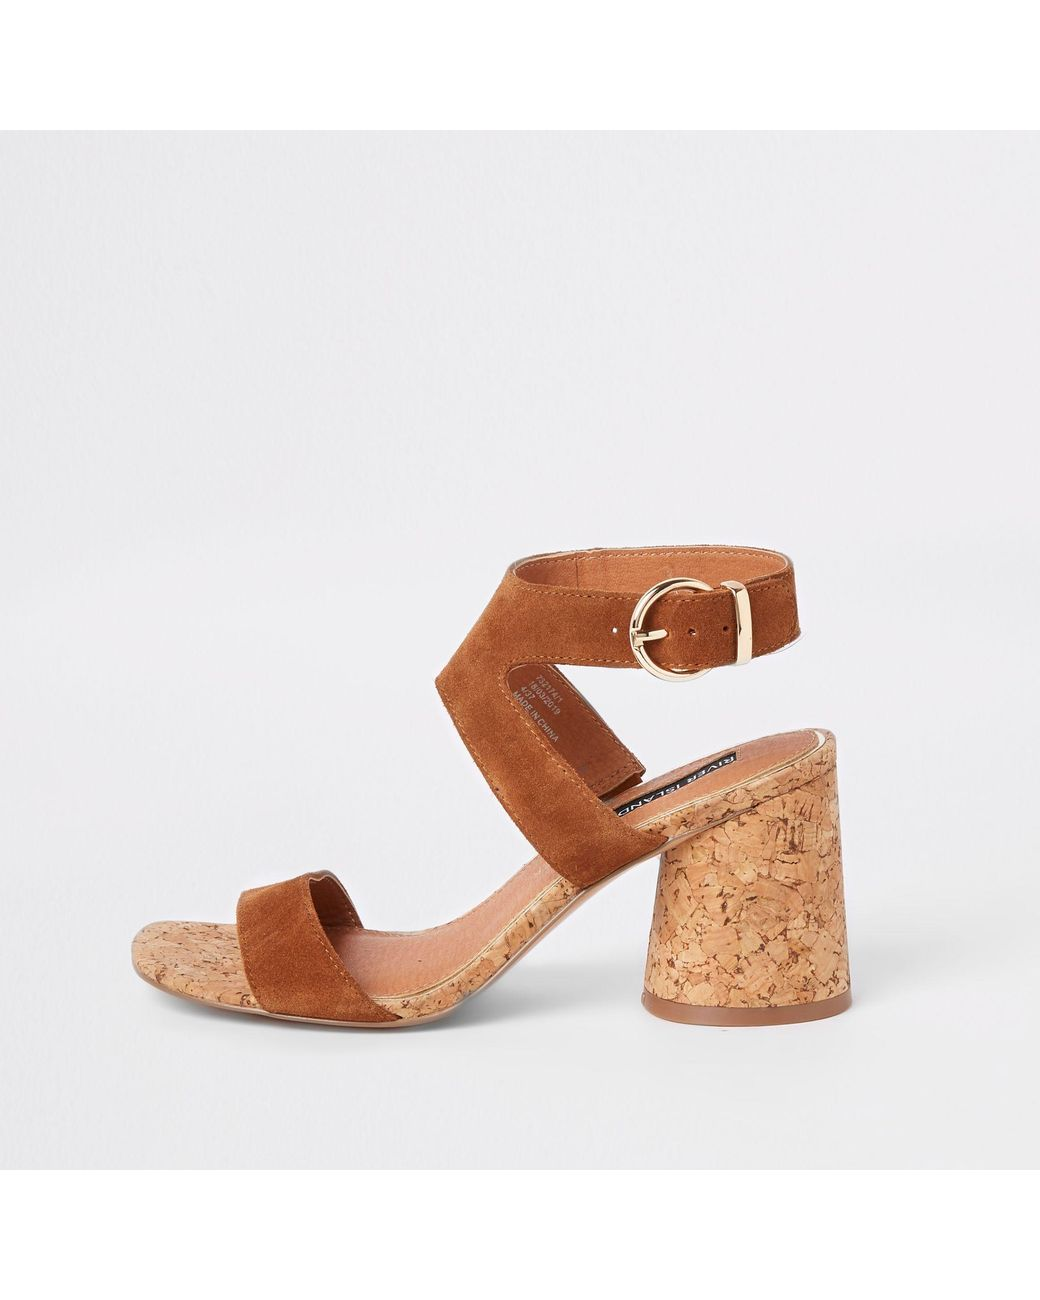 c50dc84c8a0 Long-Touch to Zoom. Long-Touch to Zoom. 1  2. River Island - Brown Suede  Round Block Heel Sandals ...